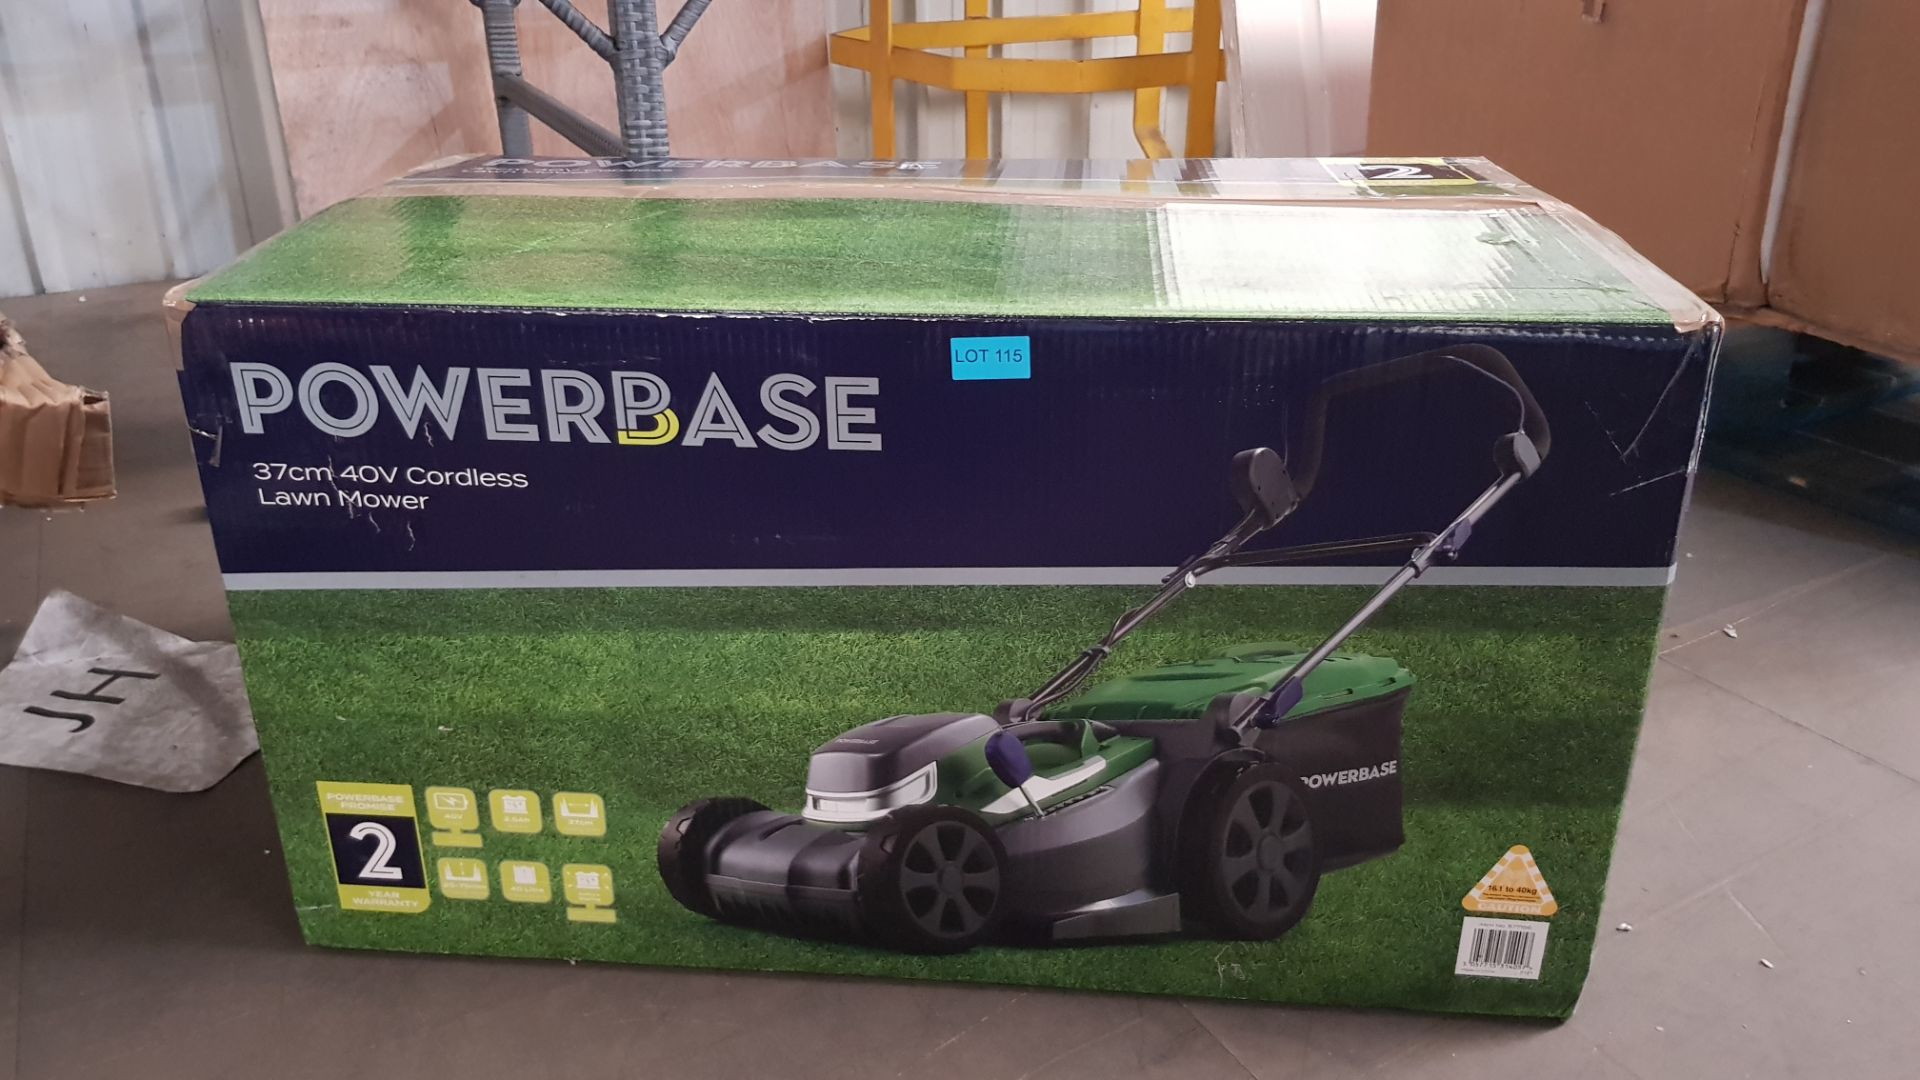 (P3) 1x Powerbase 37cm 40V Cordless Lawn Mower. RRP £199.00. Unit Appears Clean, As new & Unused. L - Image 3 of 6